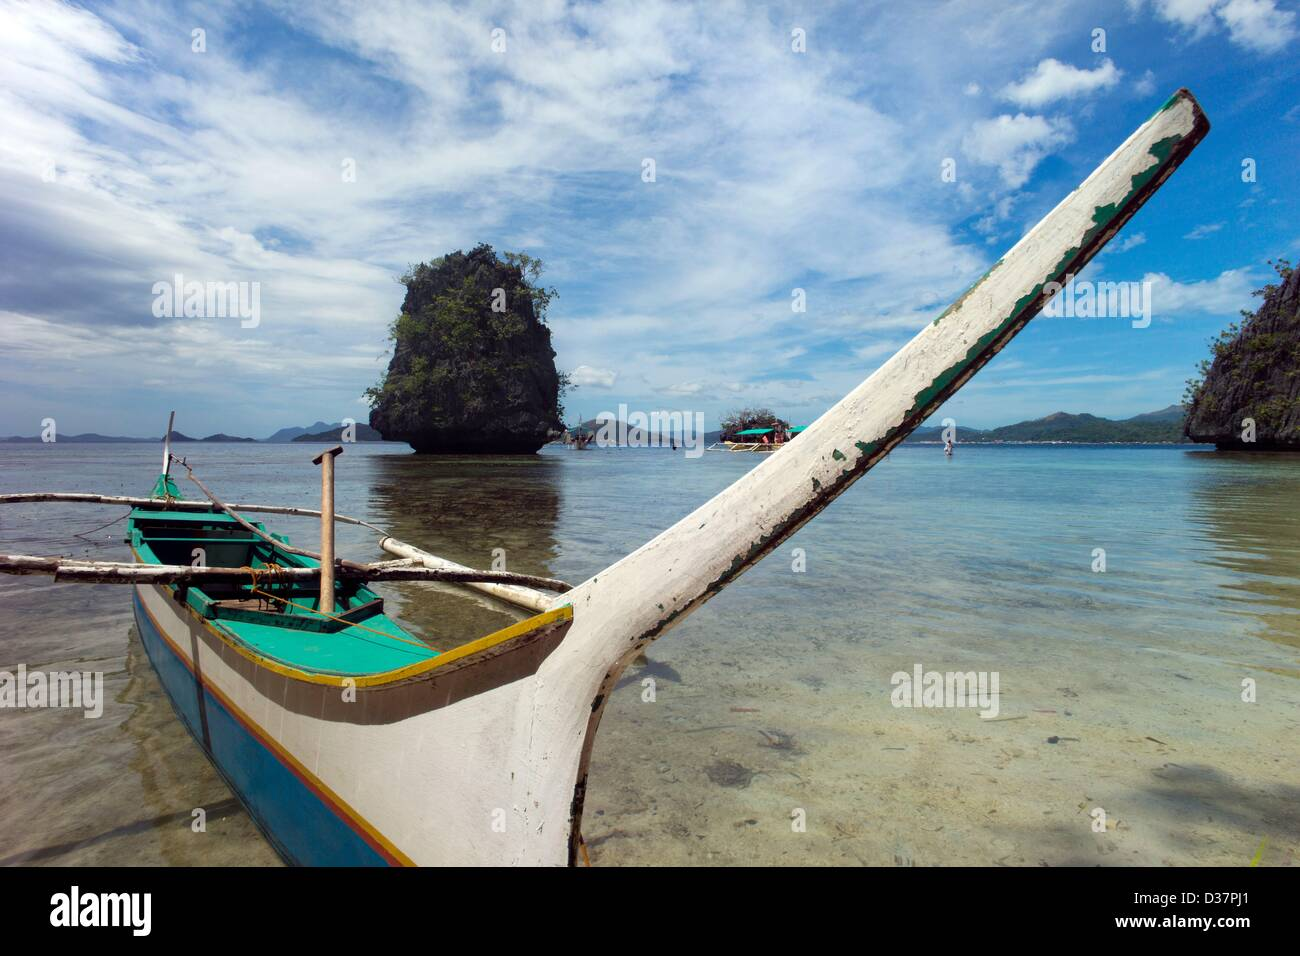 Sandy beach with outrigger boats off the island of Coron, nature reserve Balnek, Coron, Palawan, Philippinen, Asia. Stock Photo